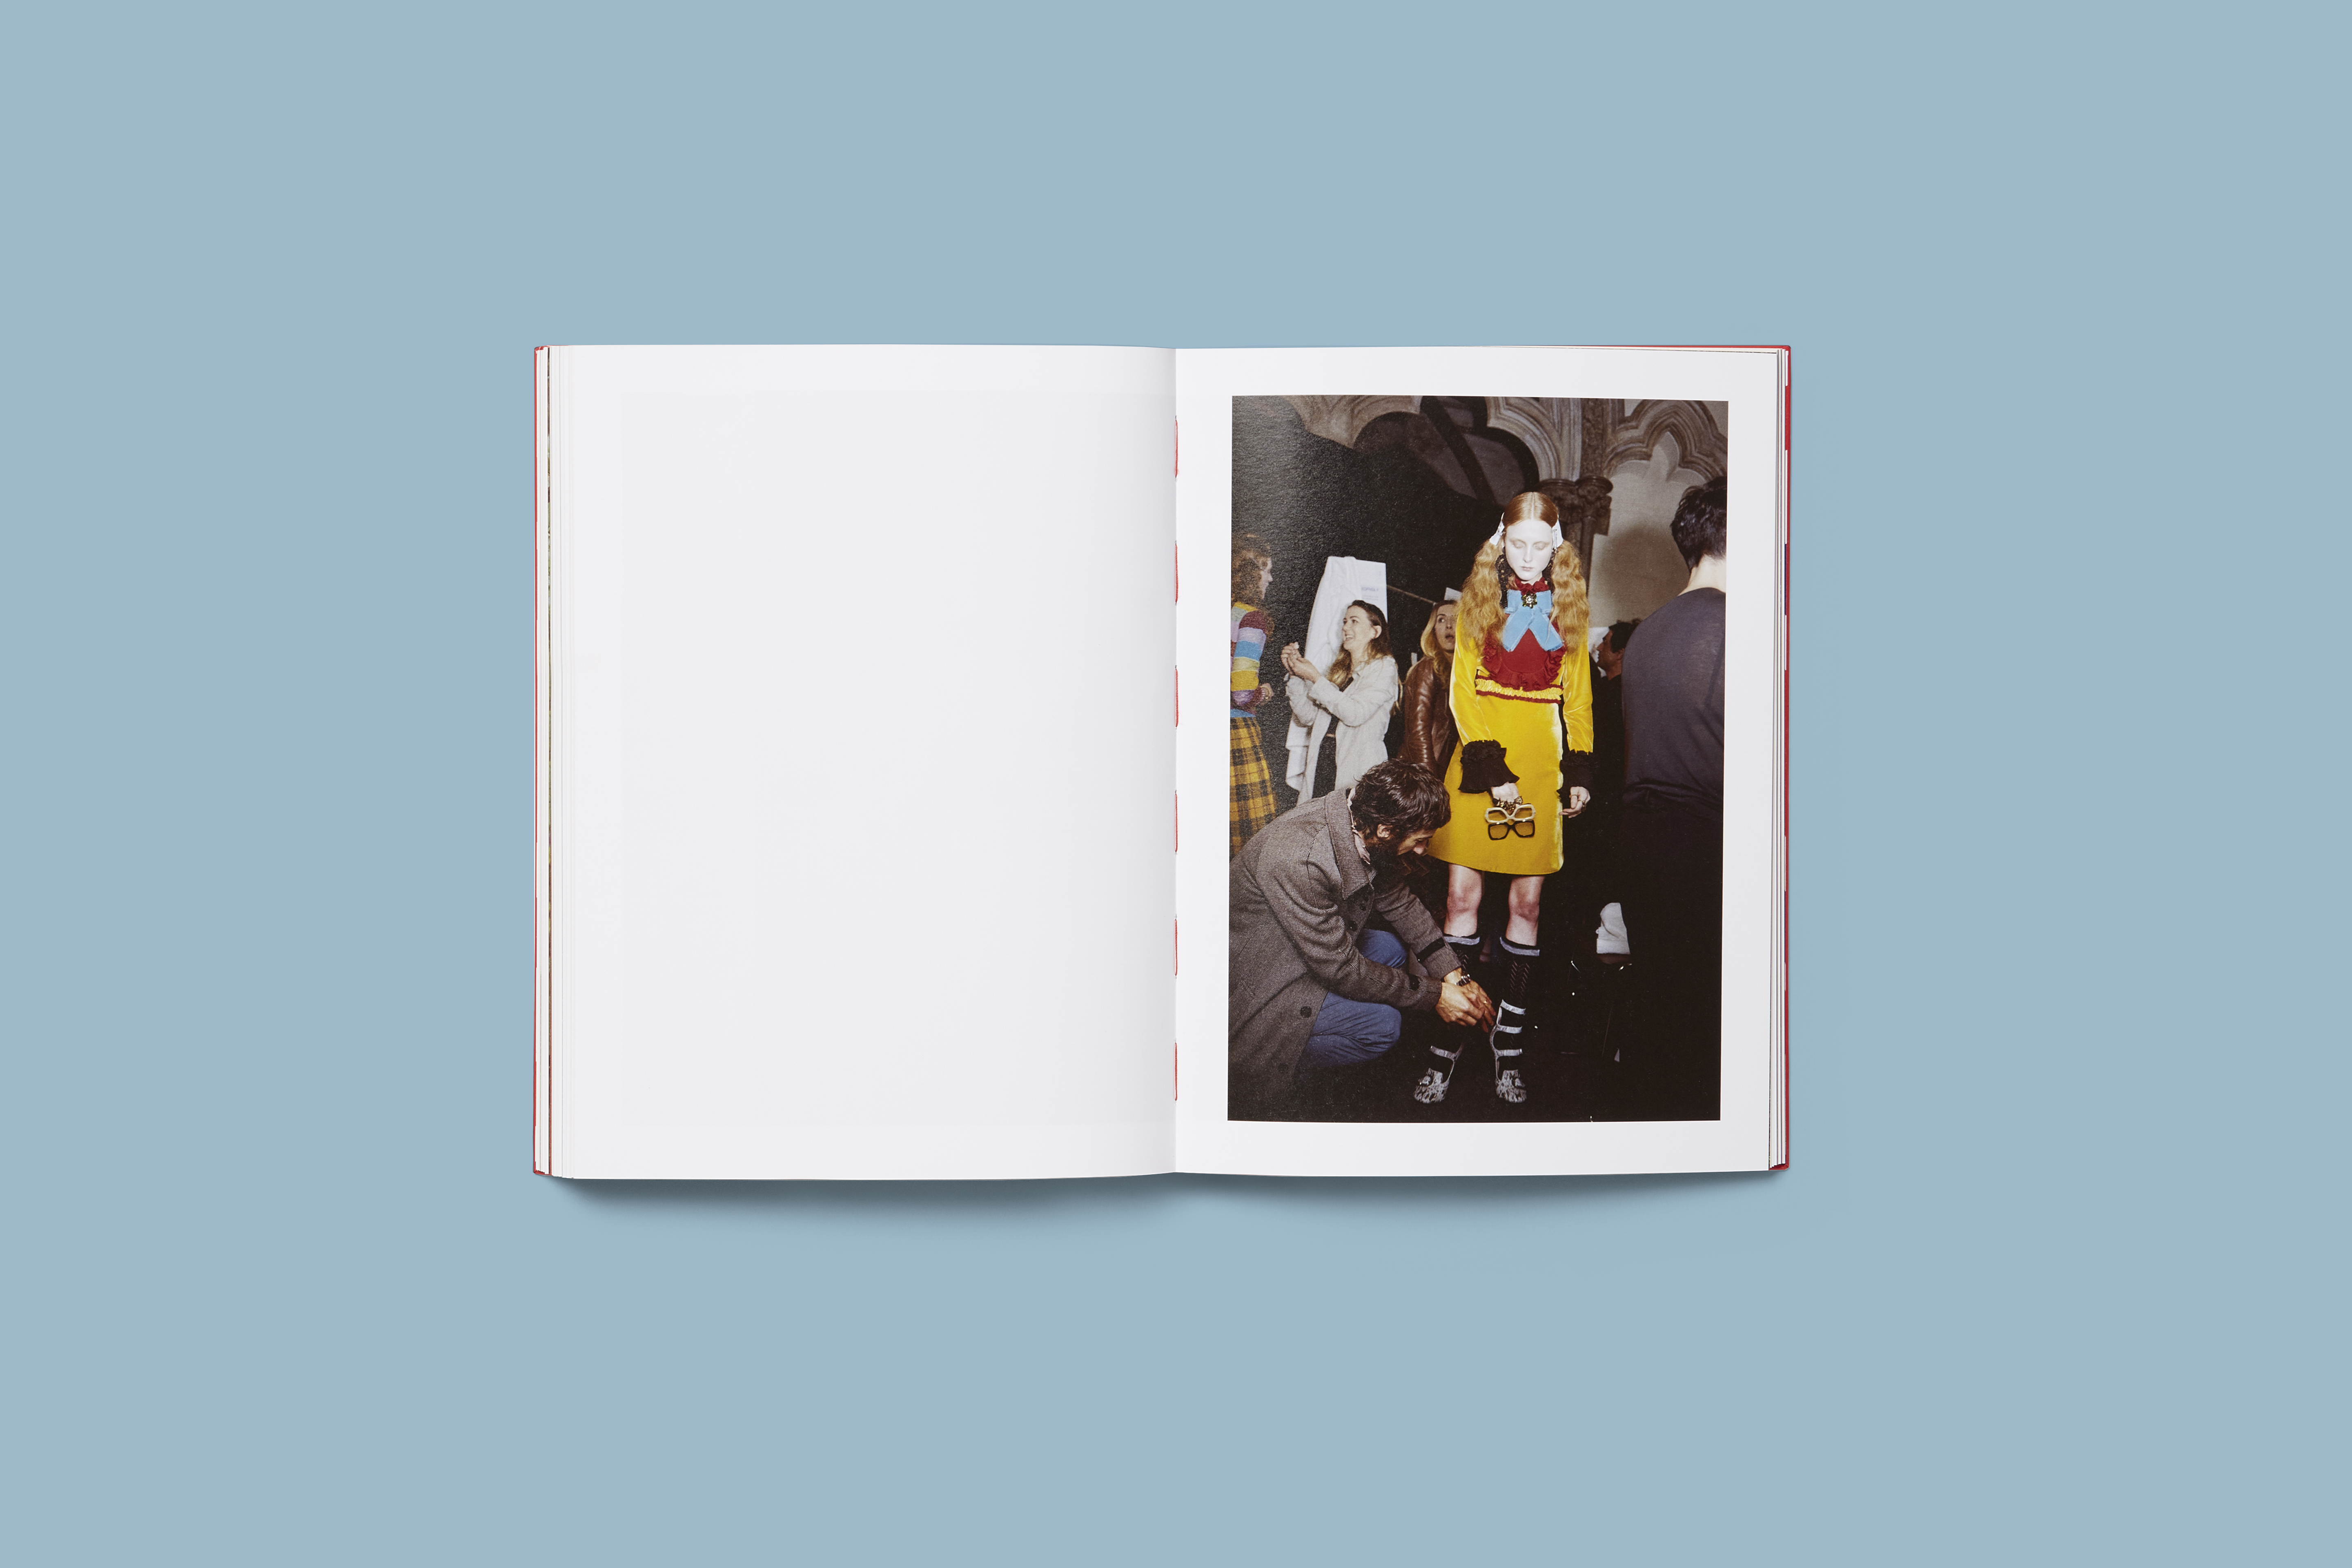 blind_for_love_book_pages_83-white_azzurro